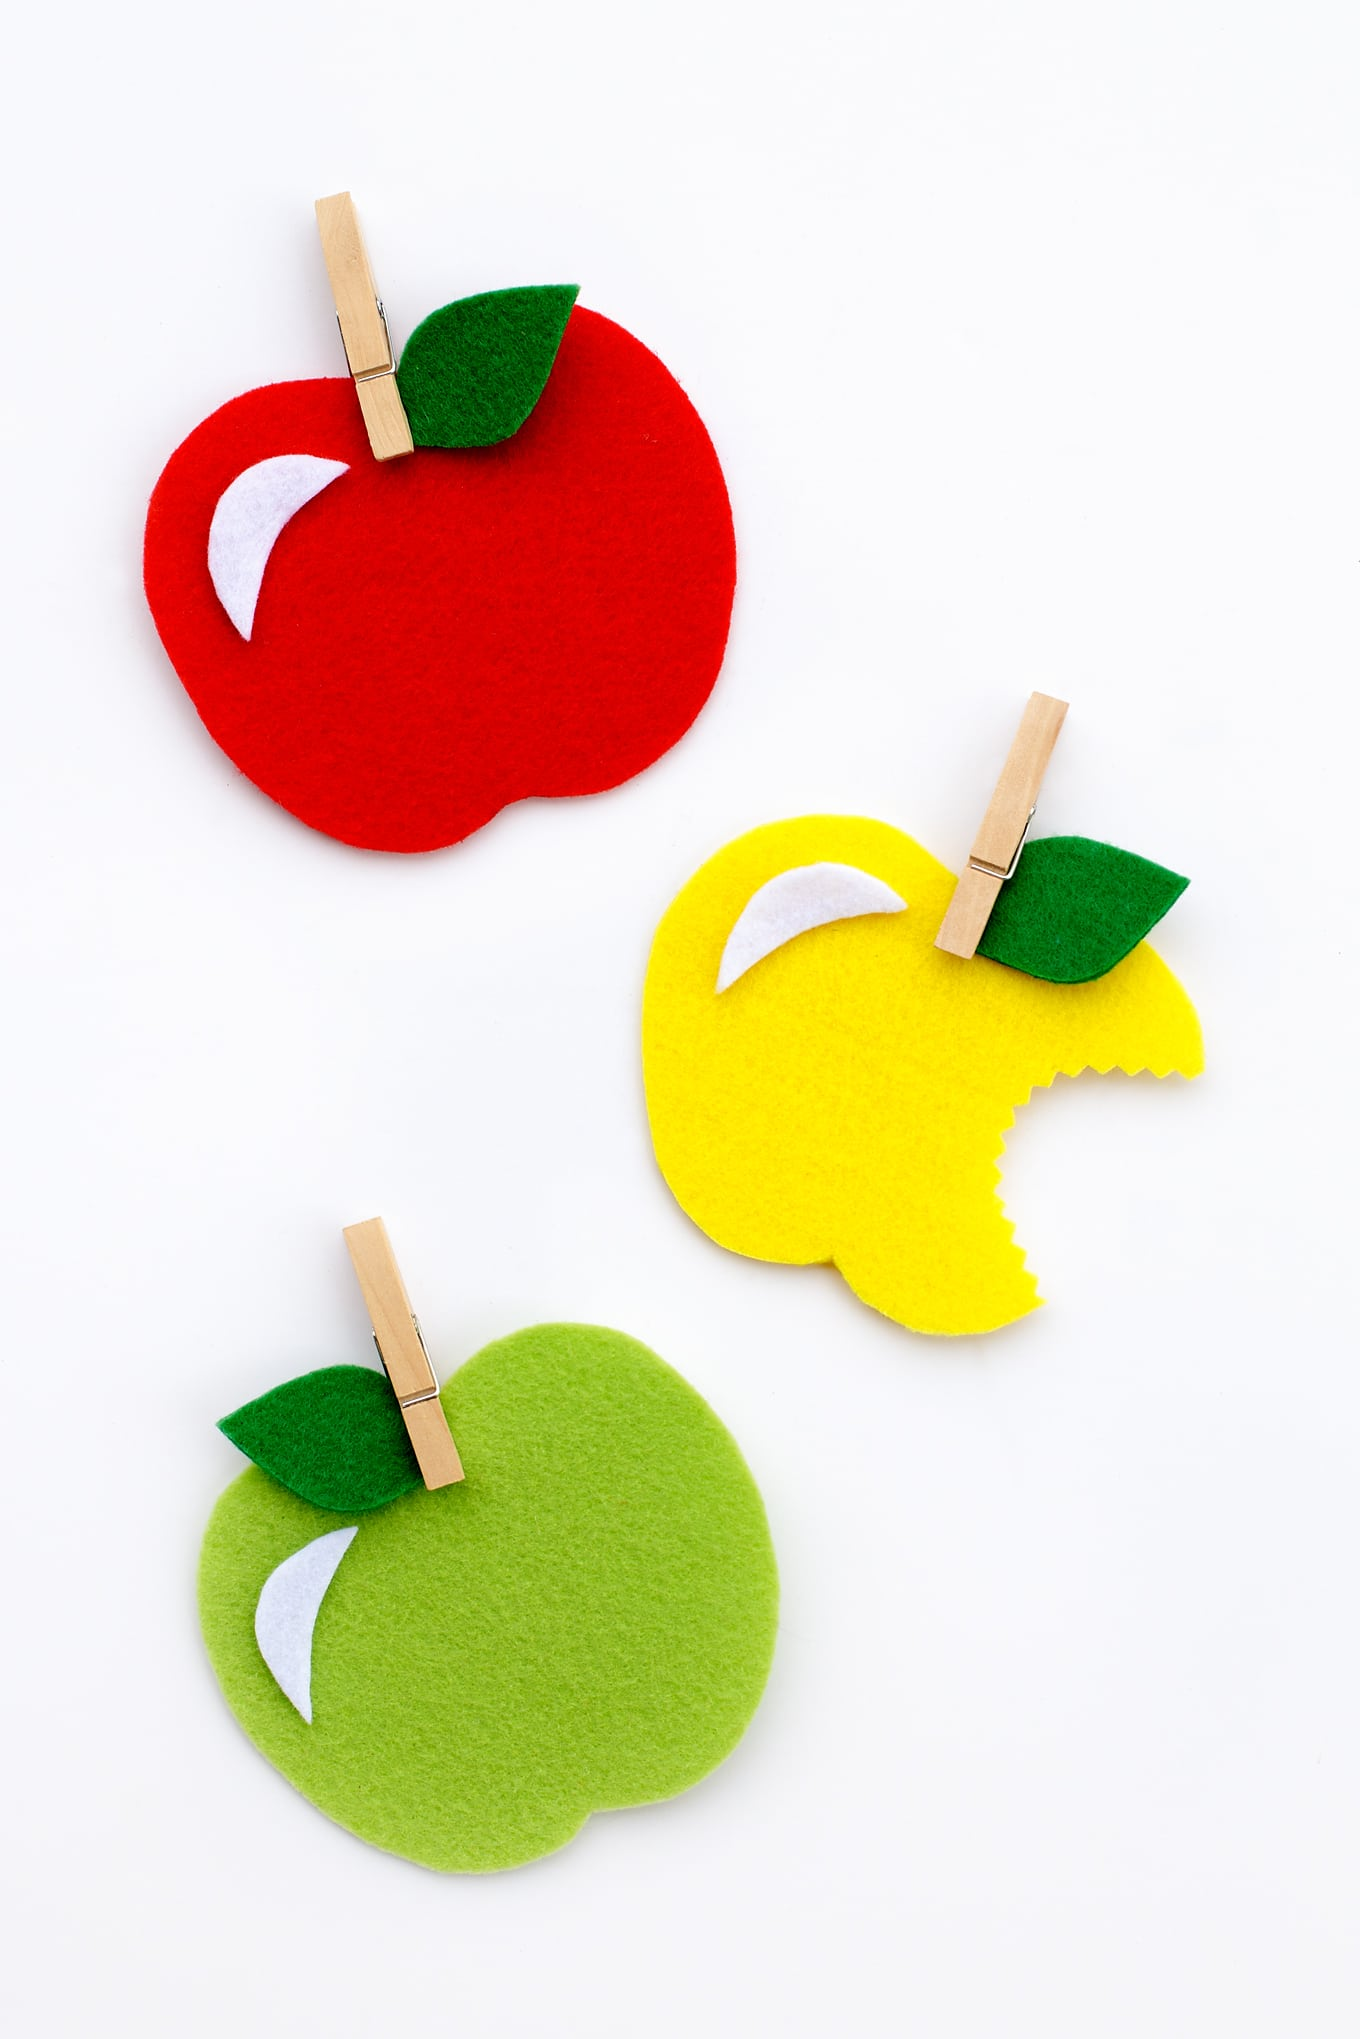 Kids of all ages will have fun creating colorful felt apples for fall. This post includes a free printable template, making it perfect for home or school.